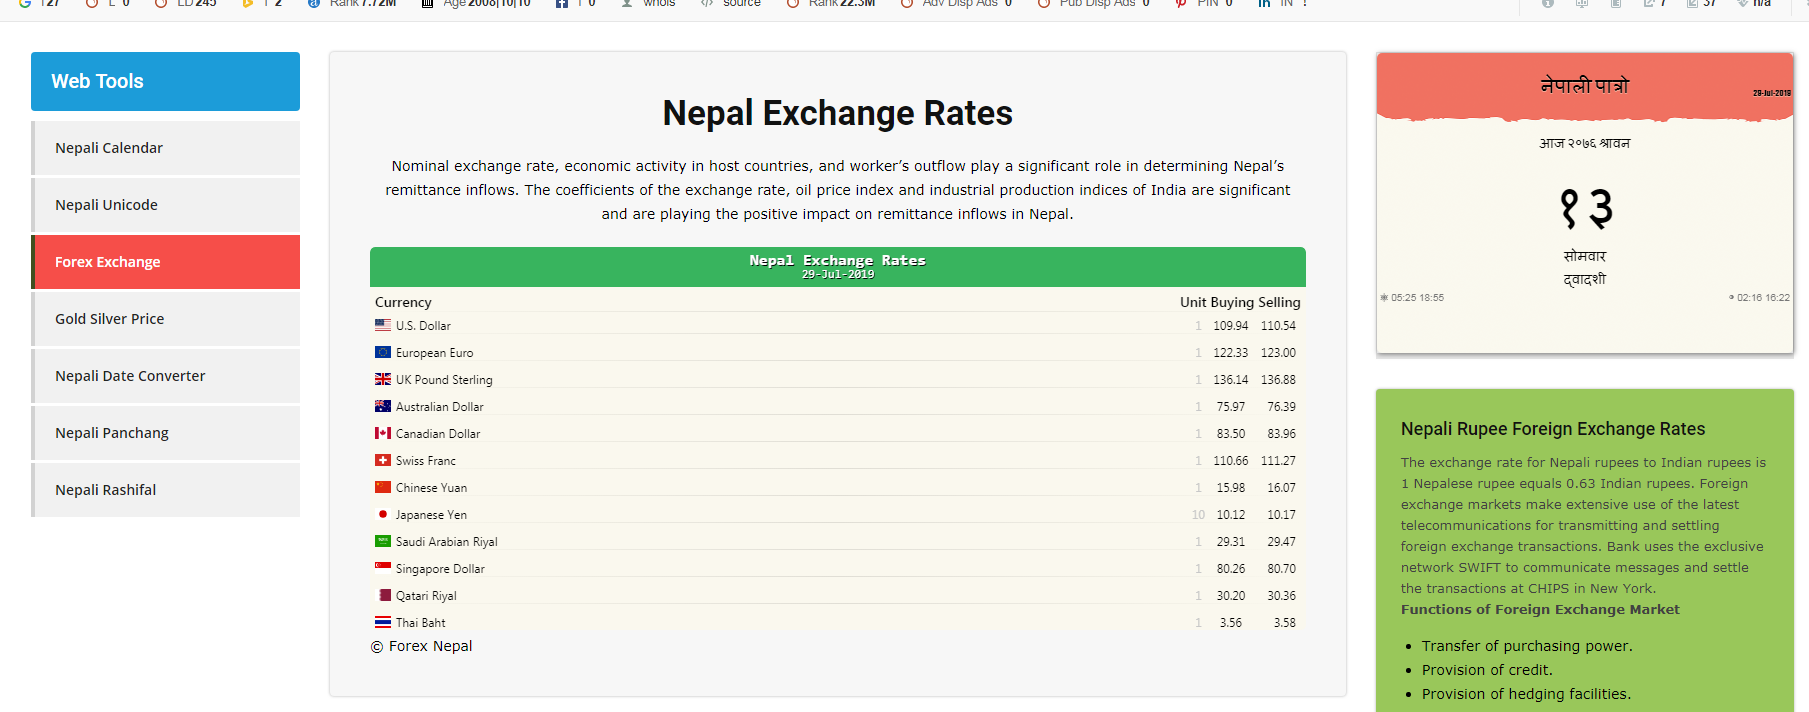 Nepali Currency Exchange Rates Today